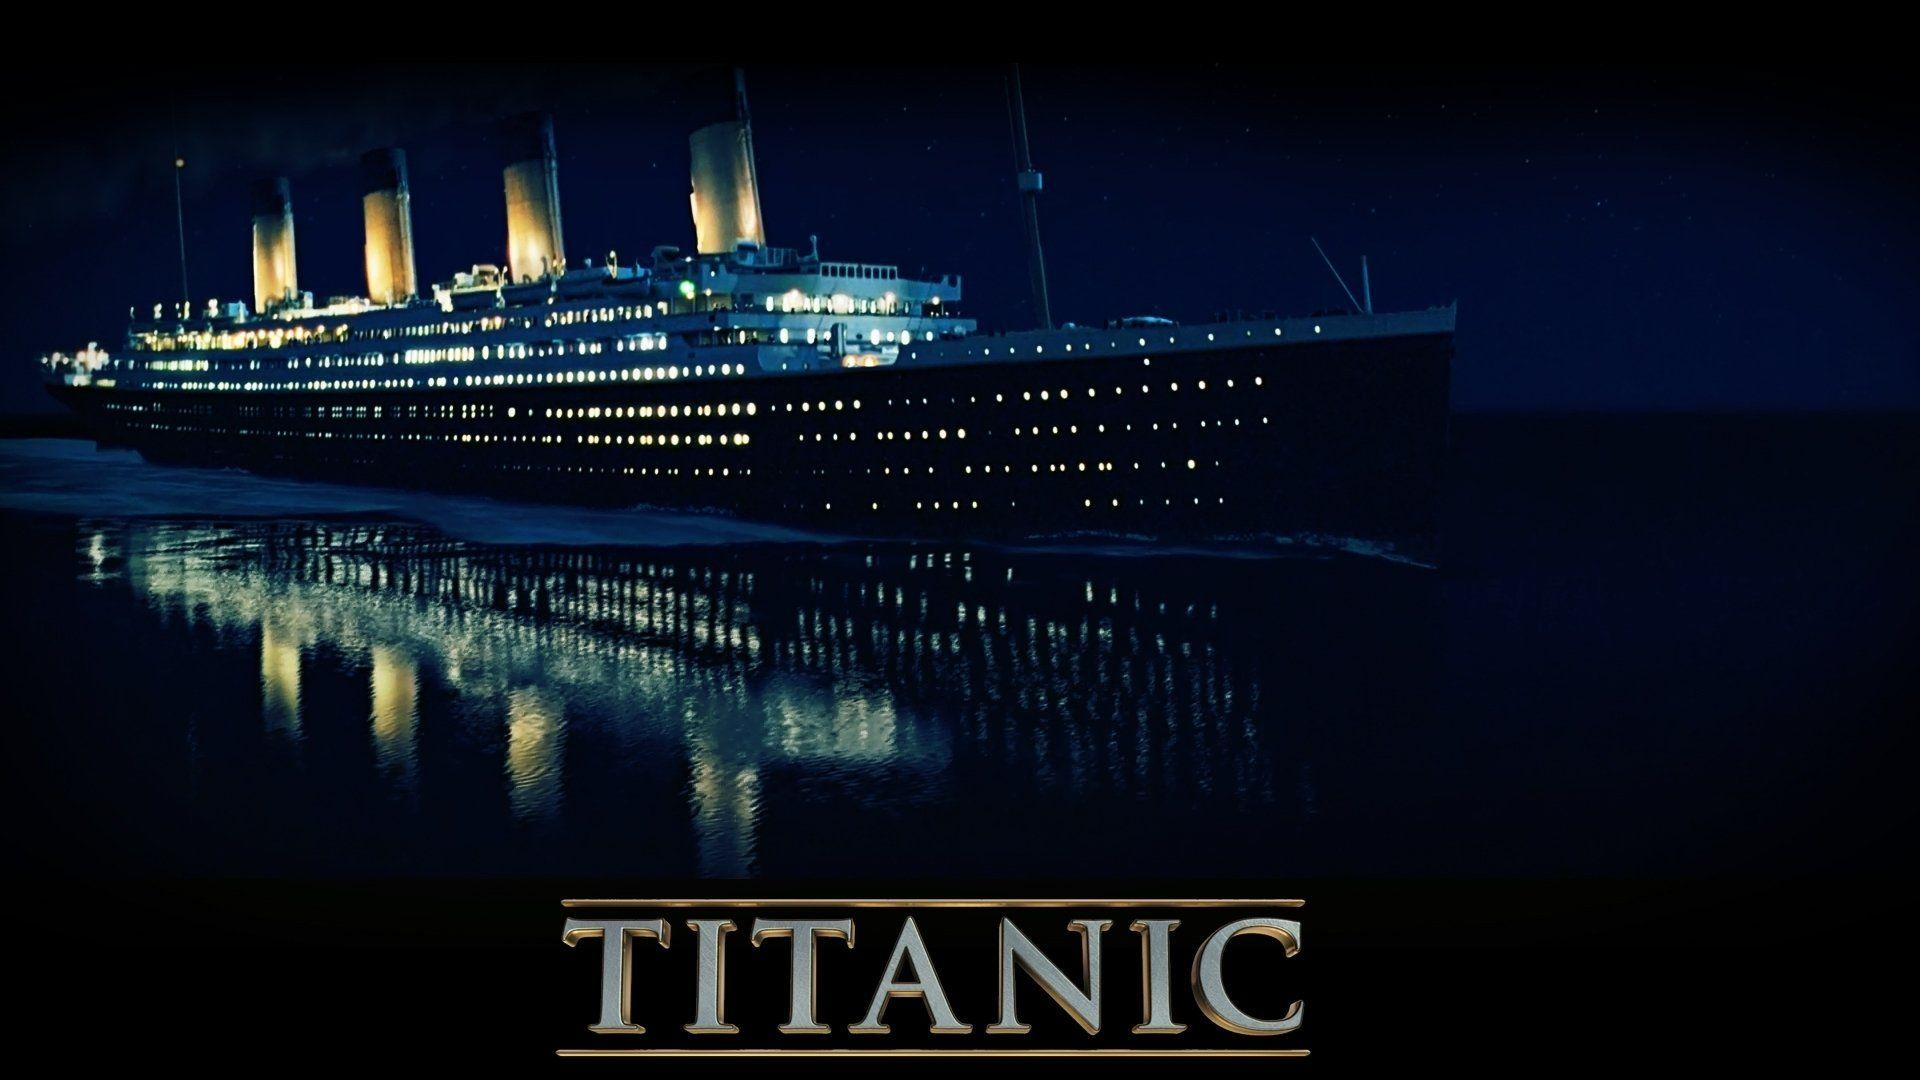 What's So Great About Titanic Wallpaper?